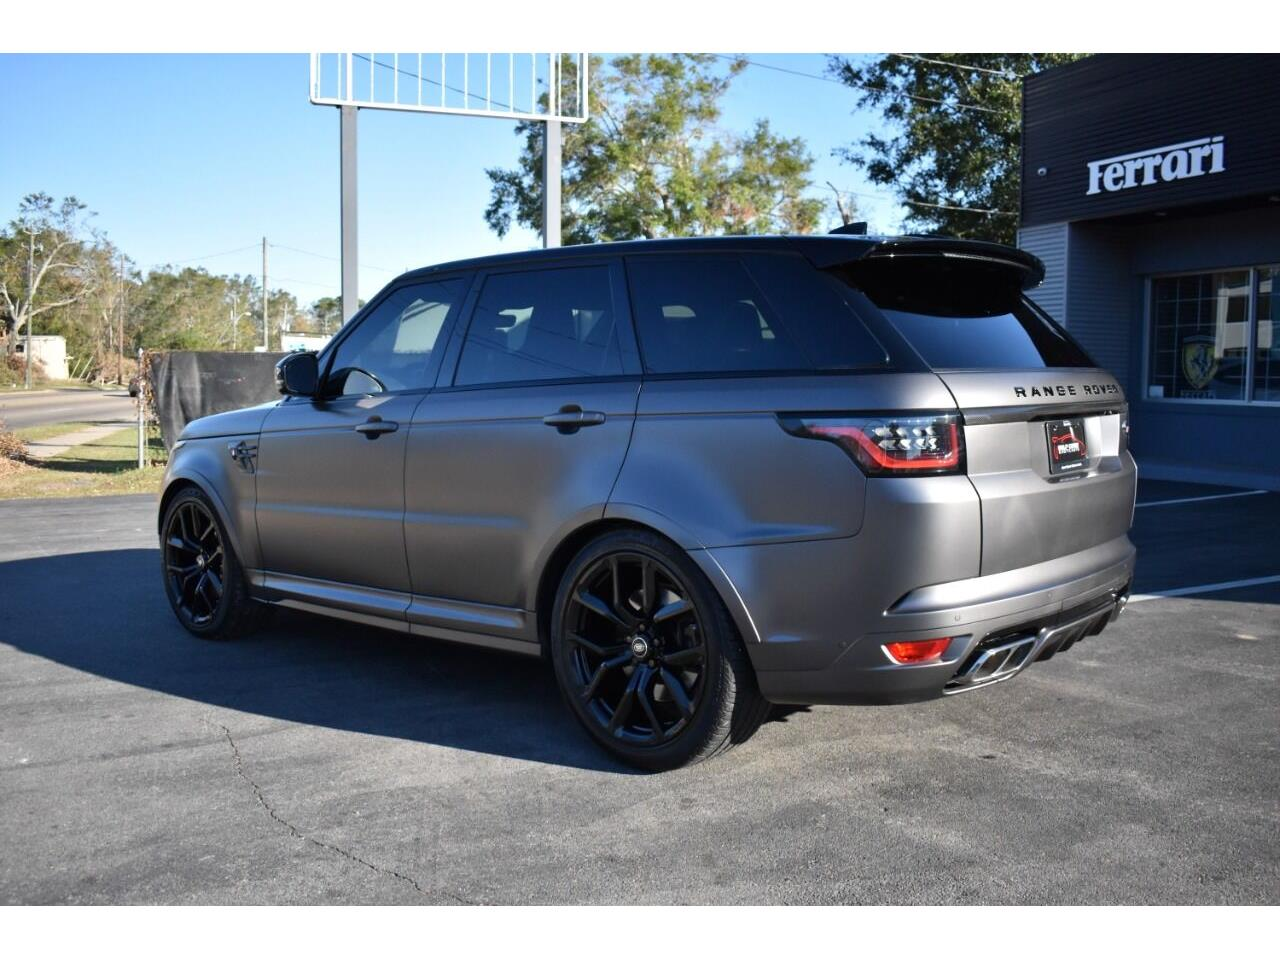 2020 Land Rover Range Rover Sport (CC-1423713) for sale in Biloxi, Mississippi